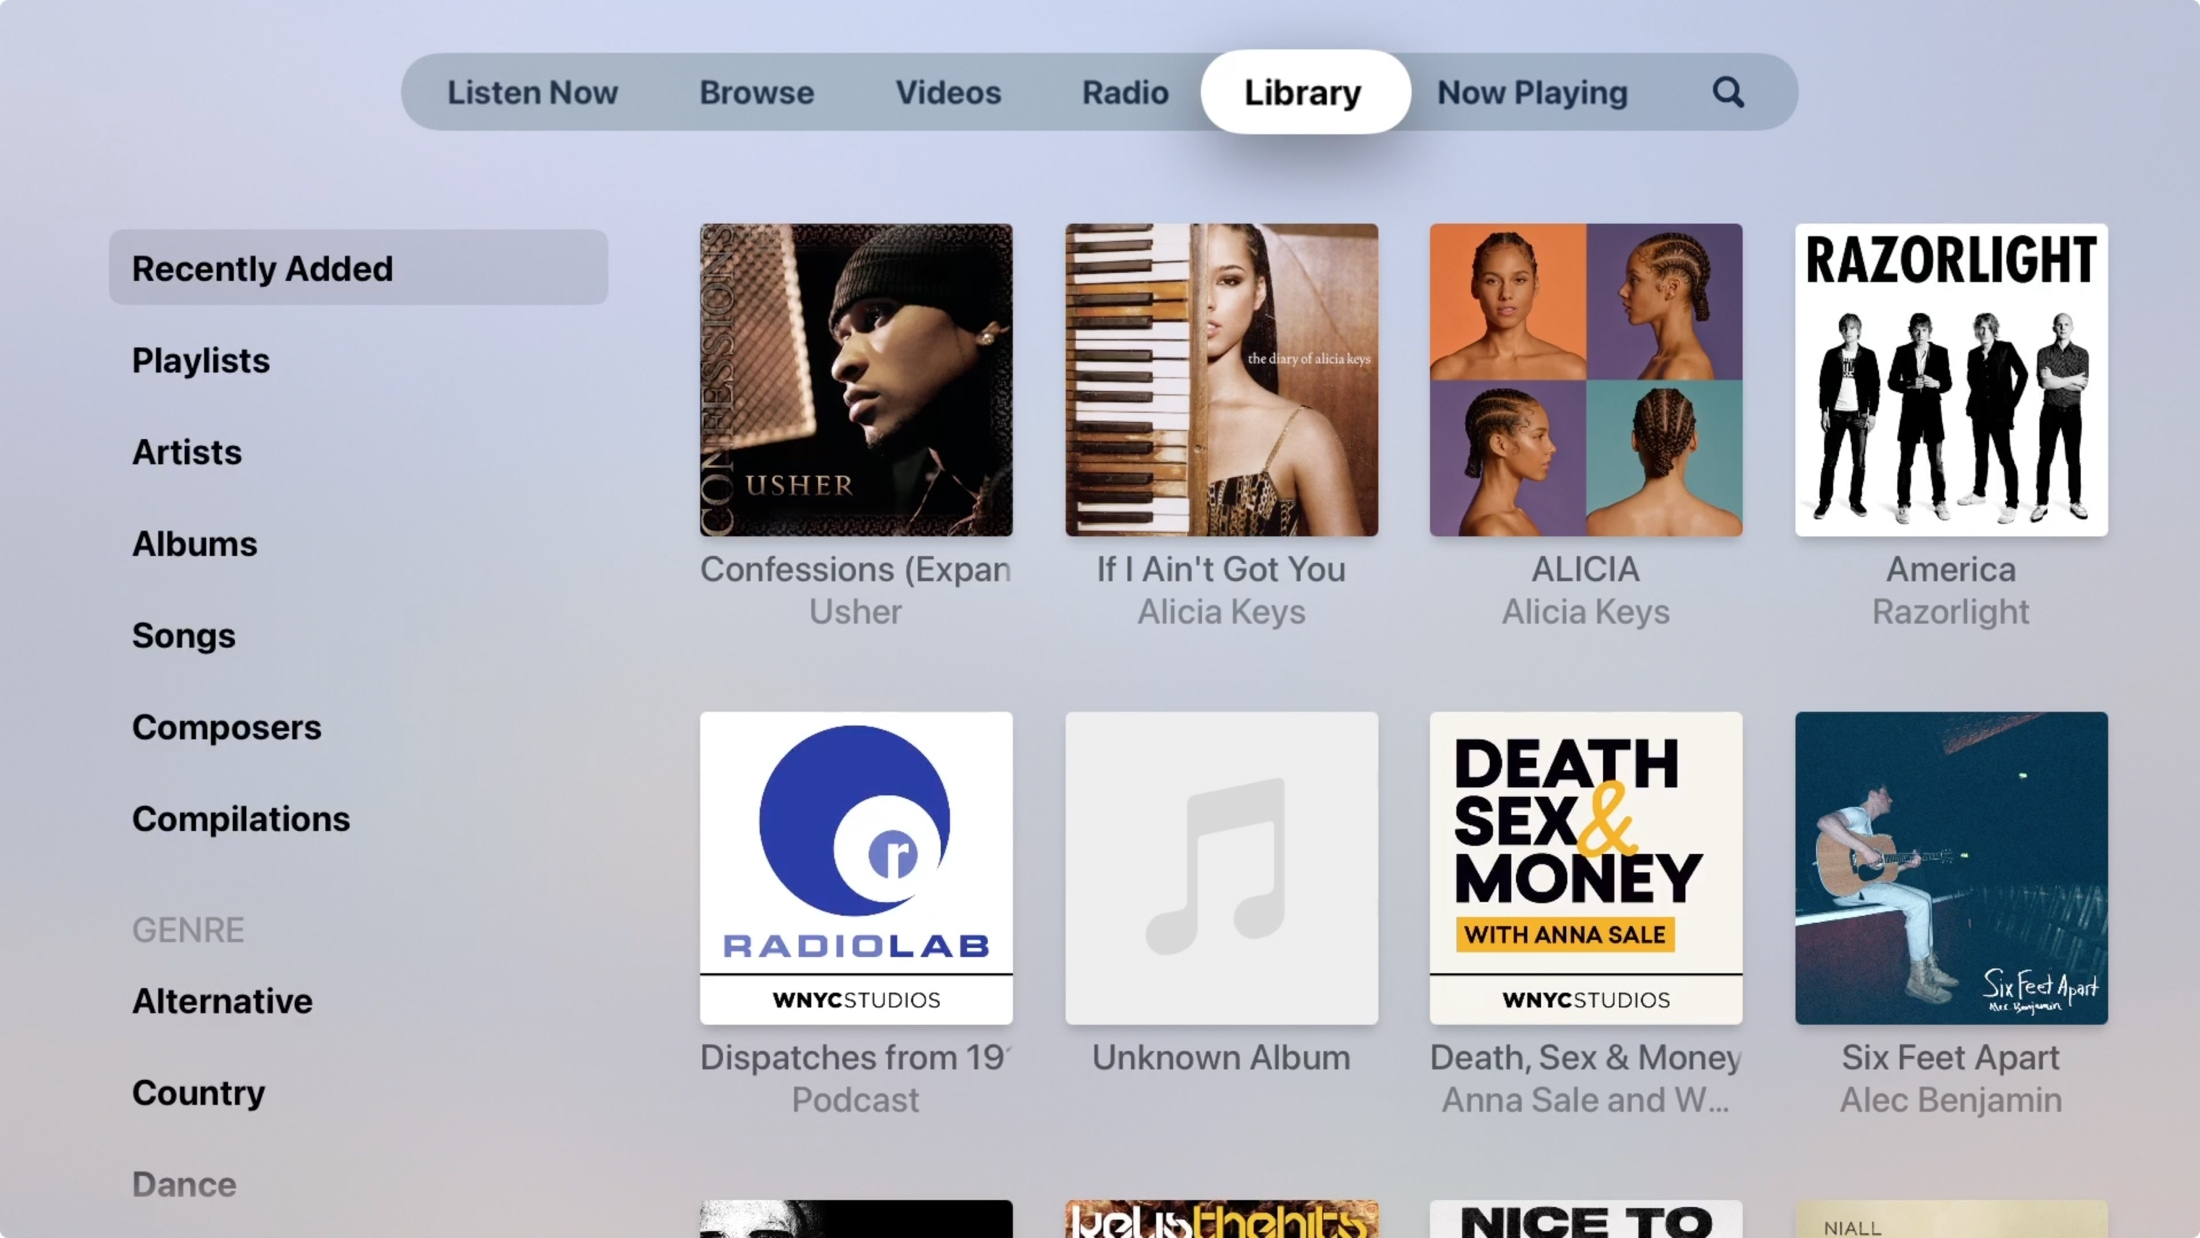 Library in Music on Apple TV